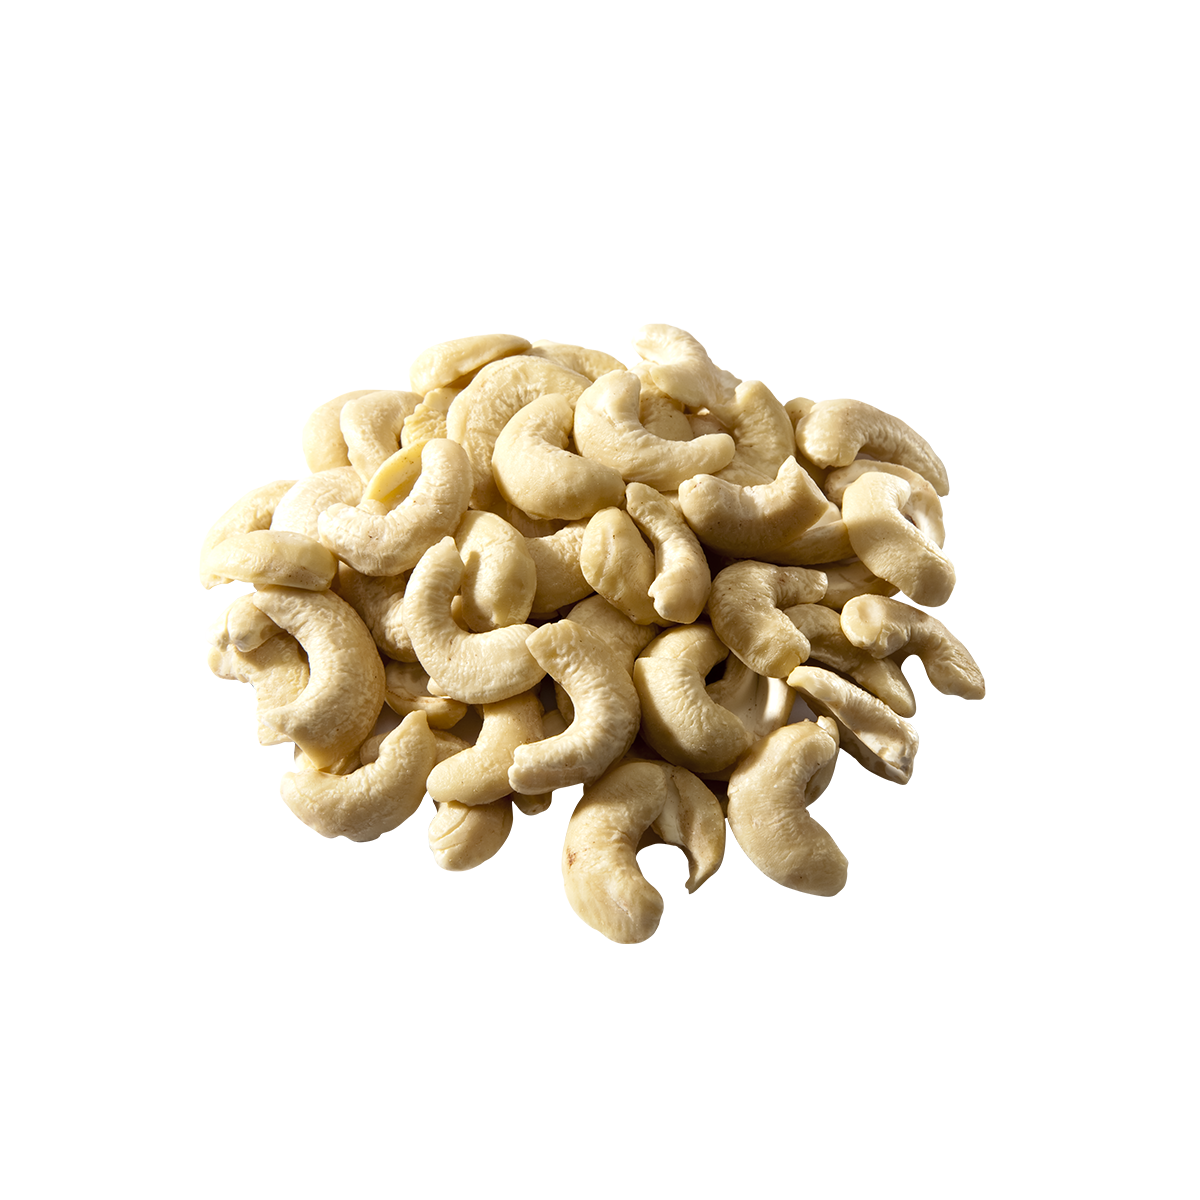 Raw cashew nuts by Lifefood